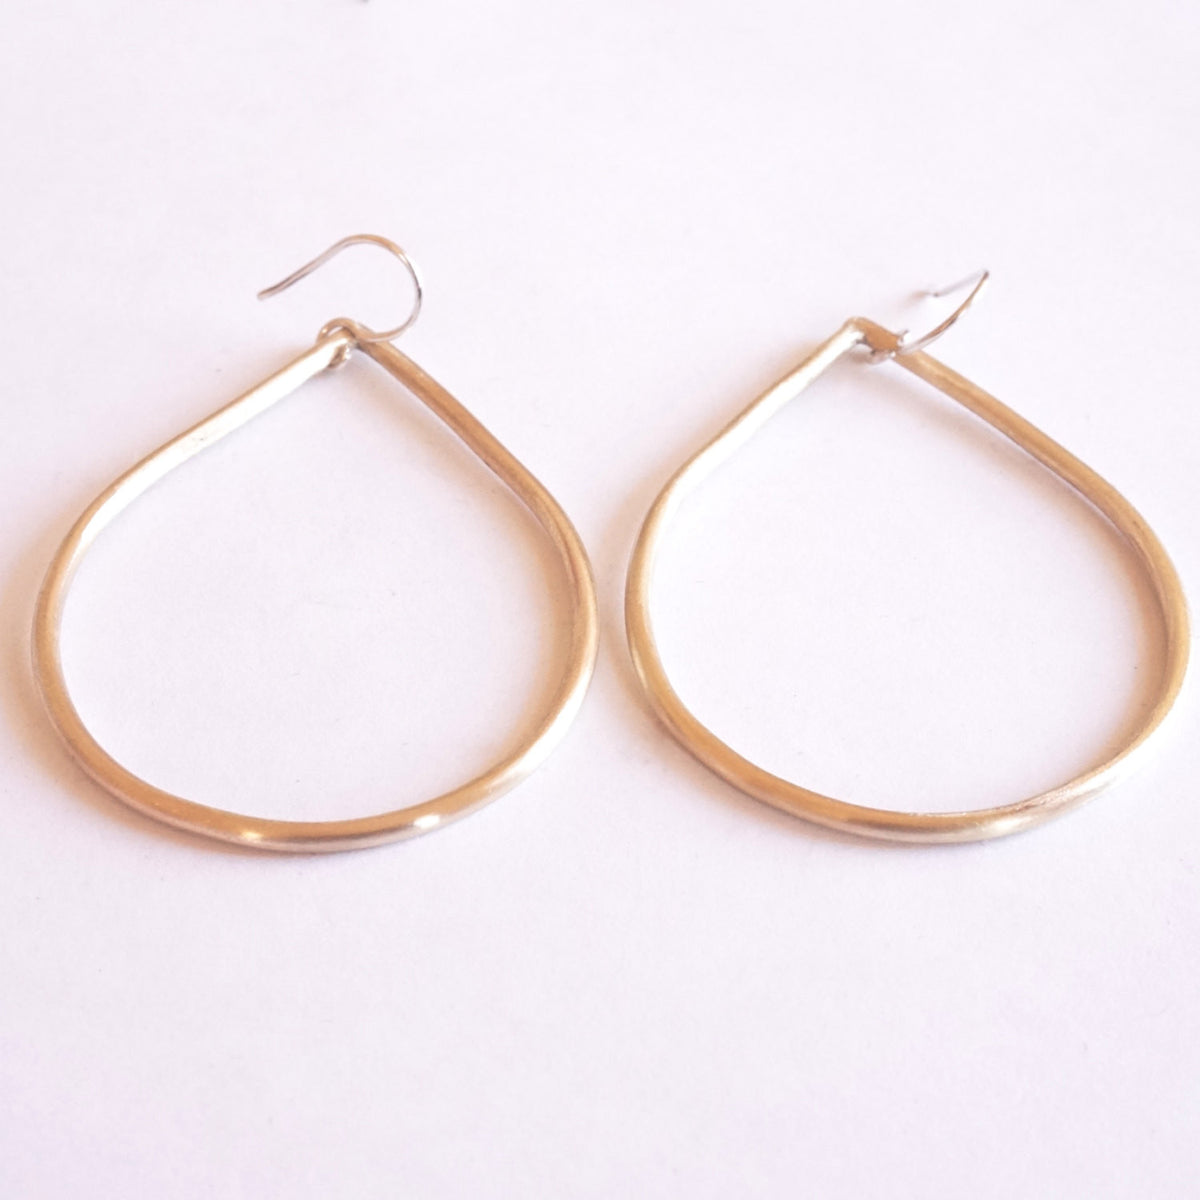 Timeless and Tasteful - Large, Open, Gold Colored Brass, Tear Drop, Dangle Earrings - 0101 - Virginia Wynne Designs